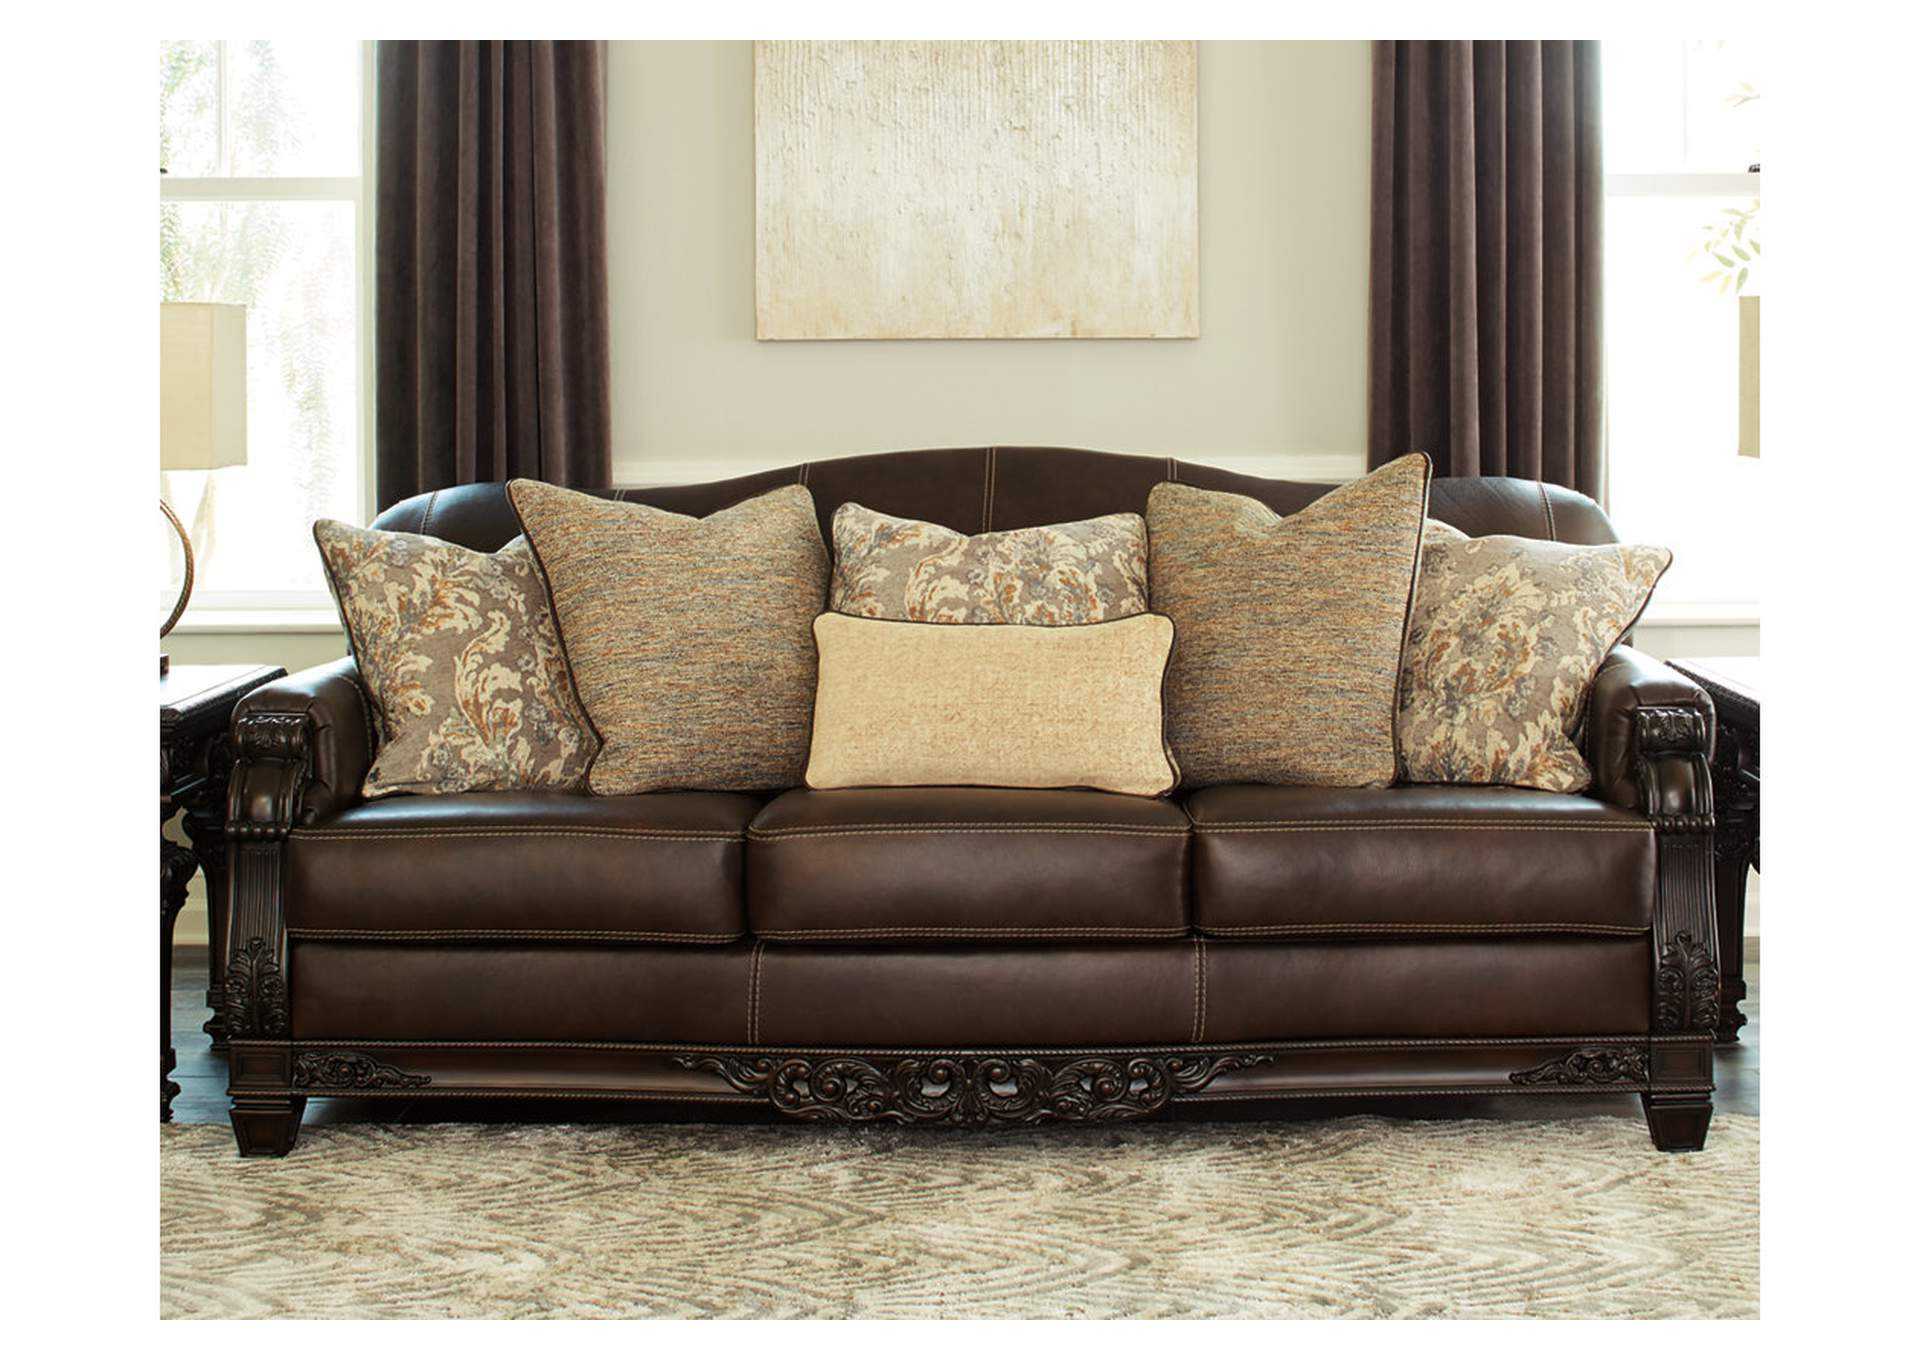 Embrook Chocolate Sofa,Signature Design By Ashley